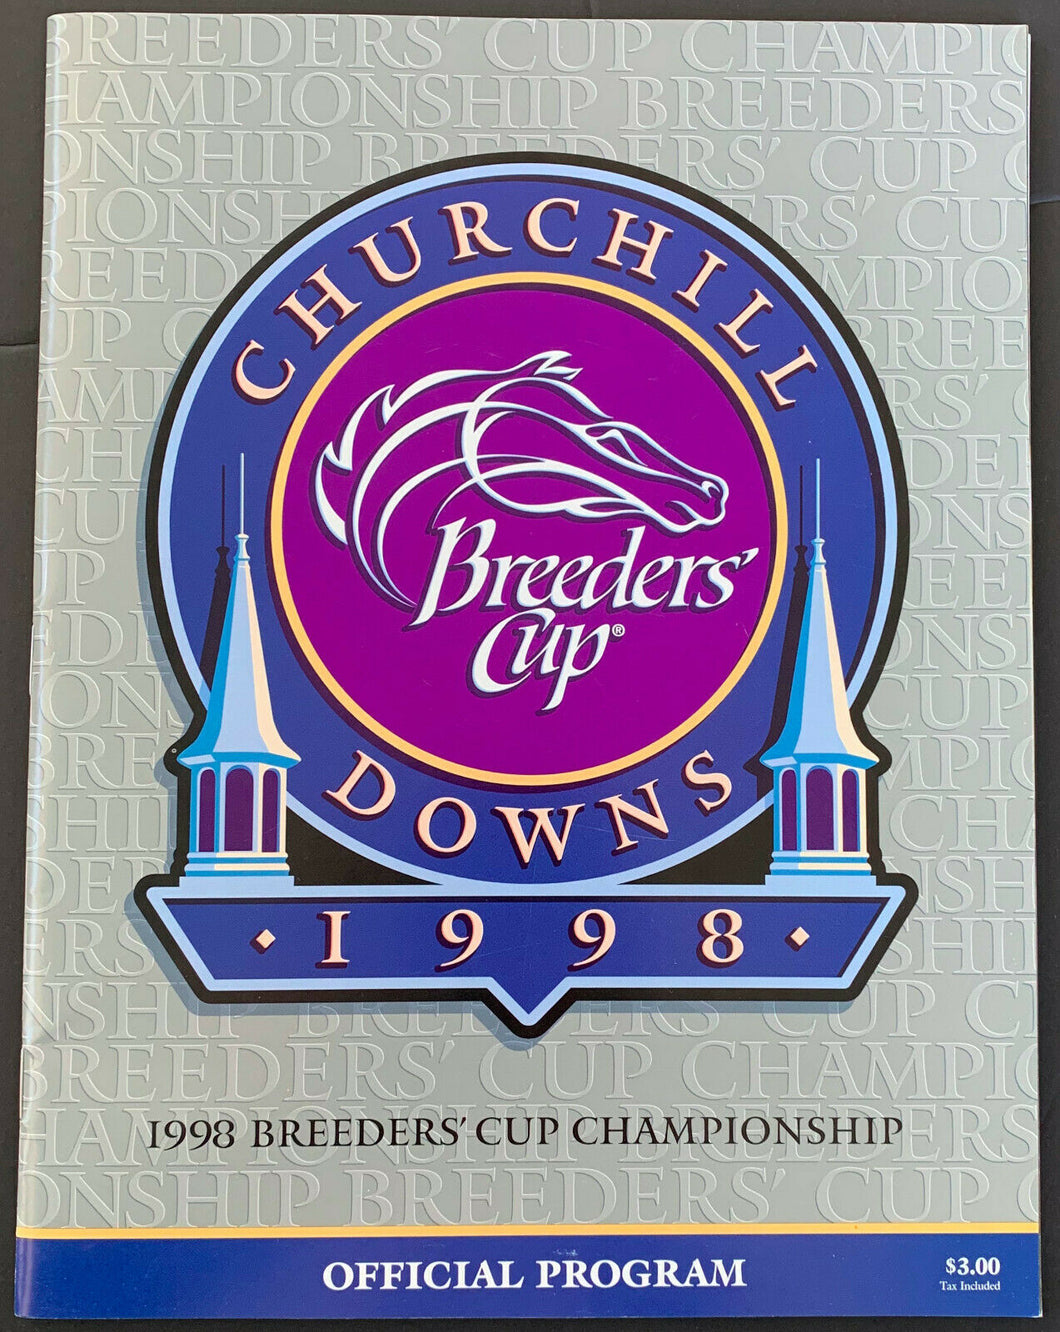 1998 Churchill Downs Breeders Cup Championship XV Horse Racing Program Vintage